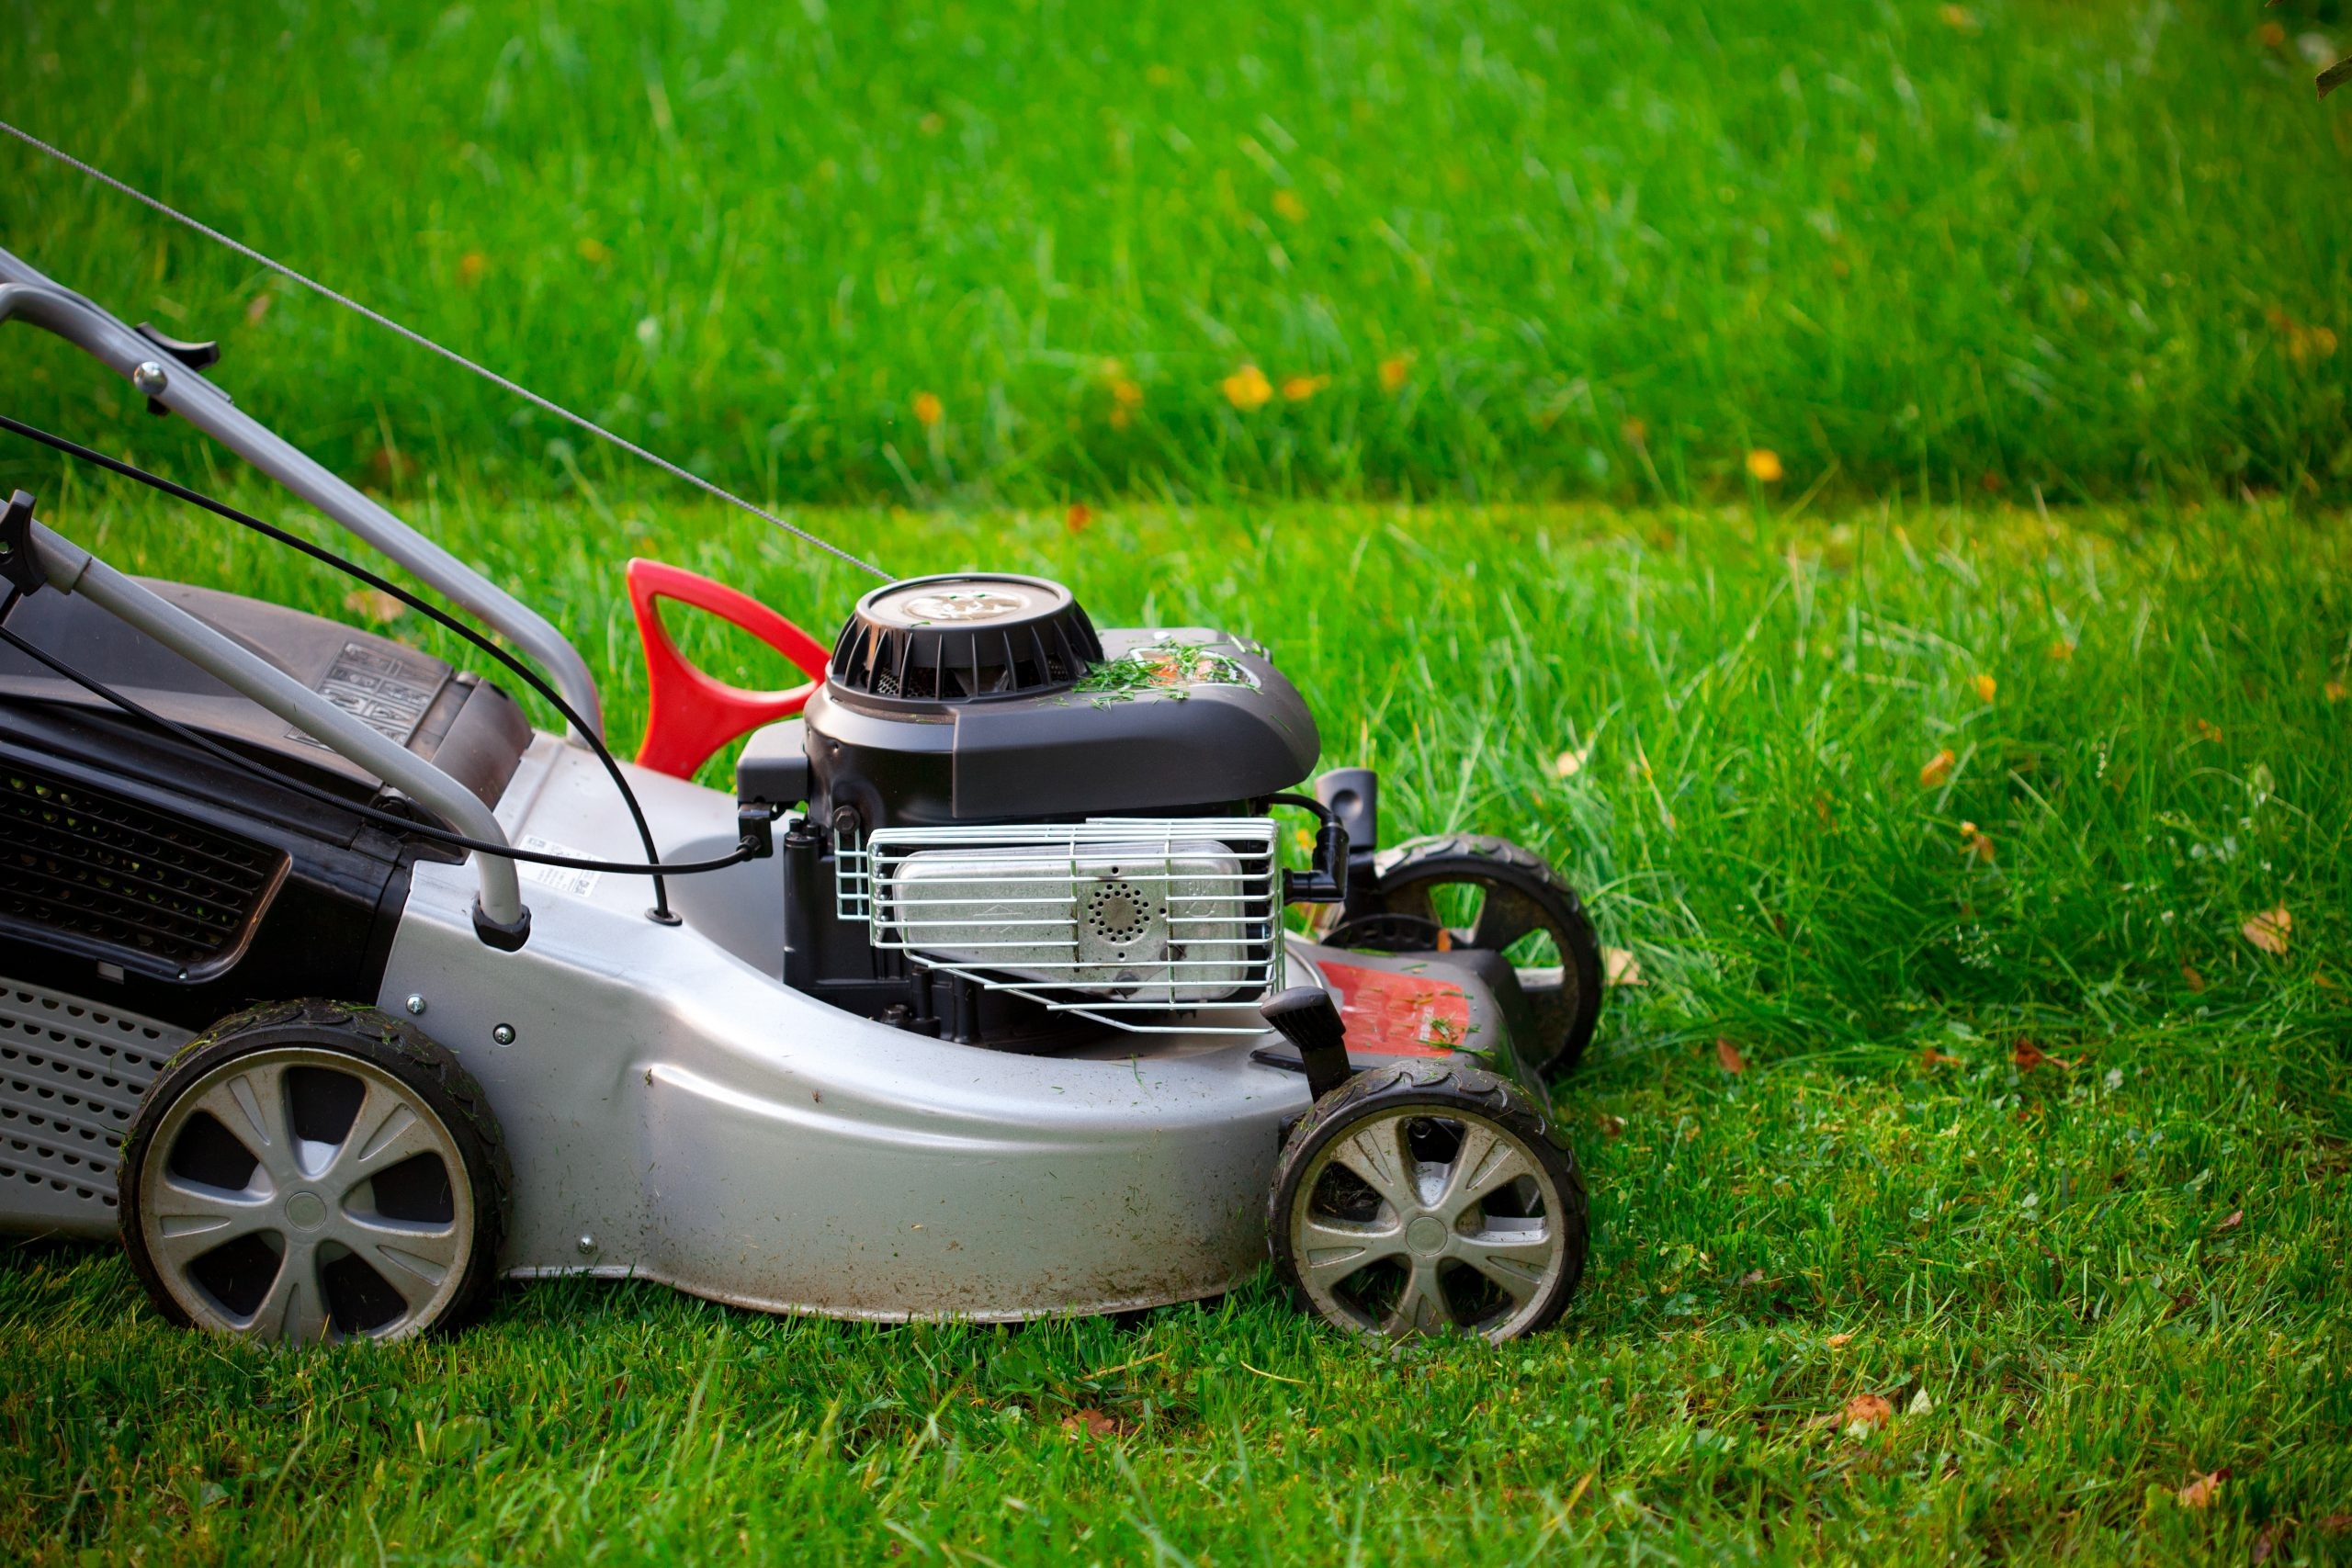 Getting your lawn mowed